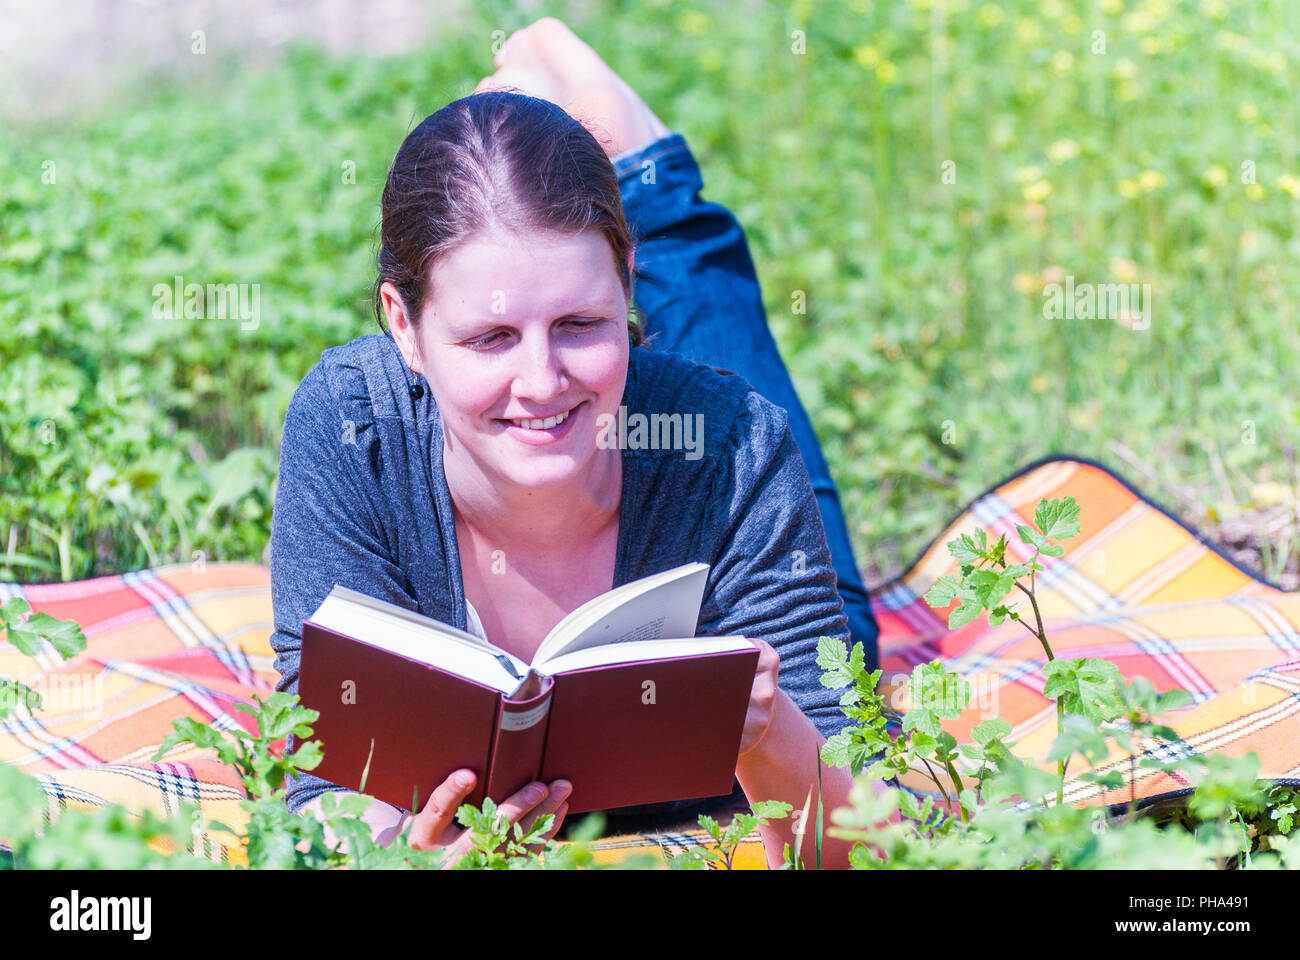 Young woman reading a book - Stock Image